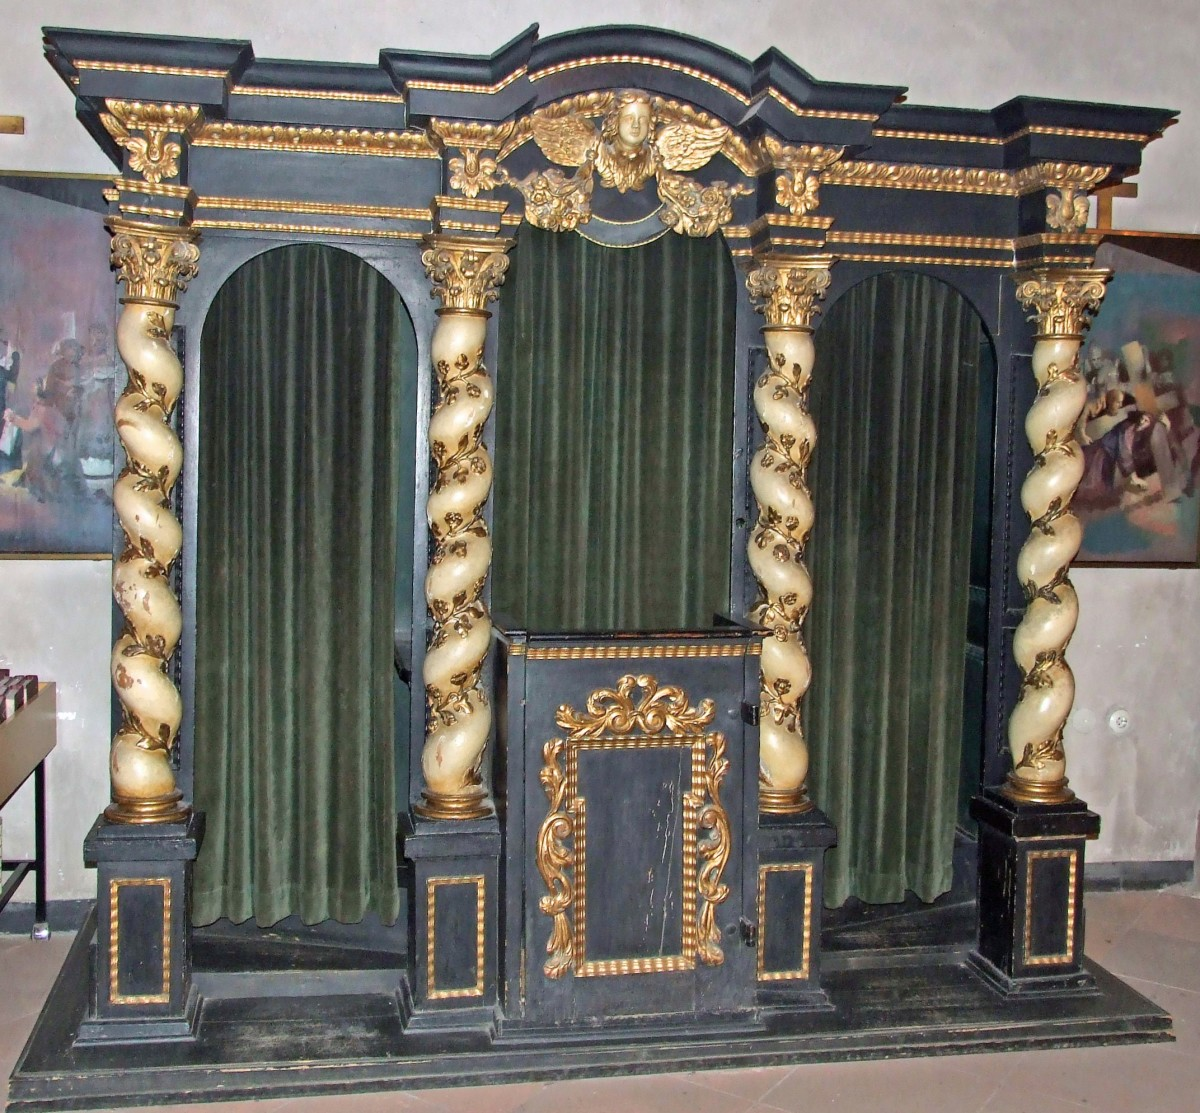 ROMAN CATHOLIC CONFESSIONAL IN FRANKFORT GERMANY